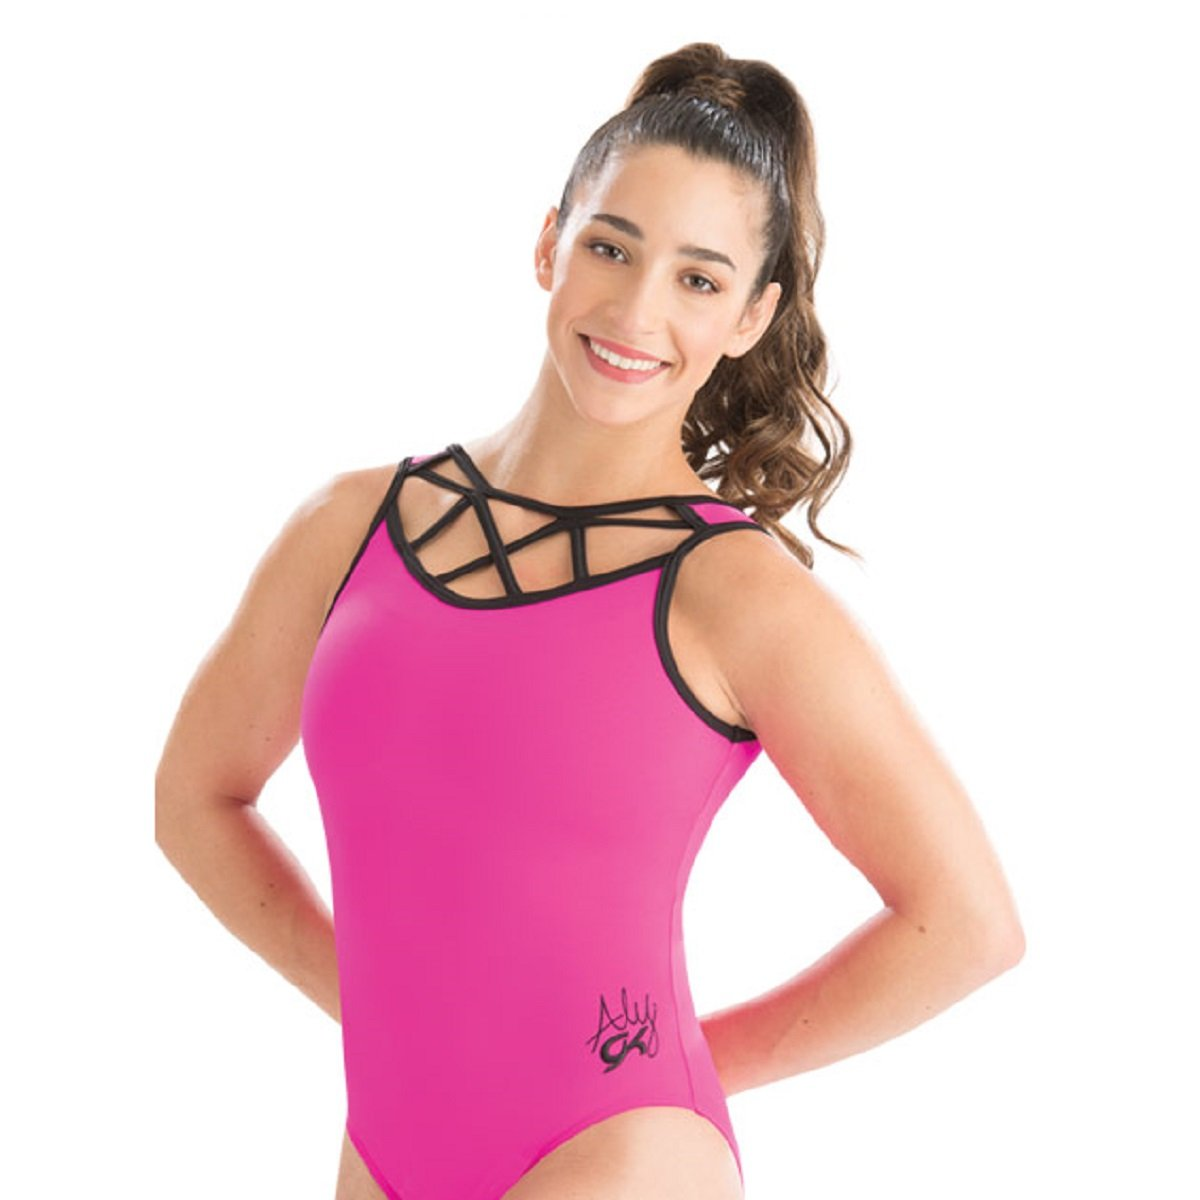 GK Elite Aly Raisman Essential Strappy Leotard Adult Small AS by GK Elite